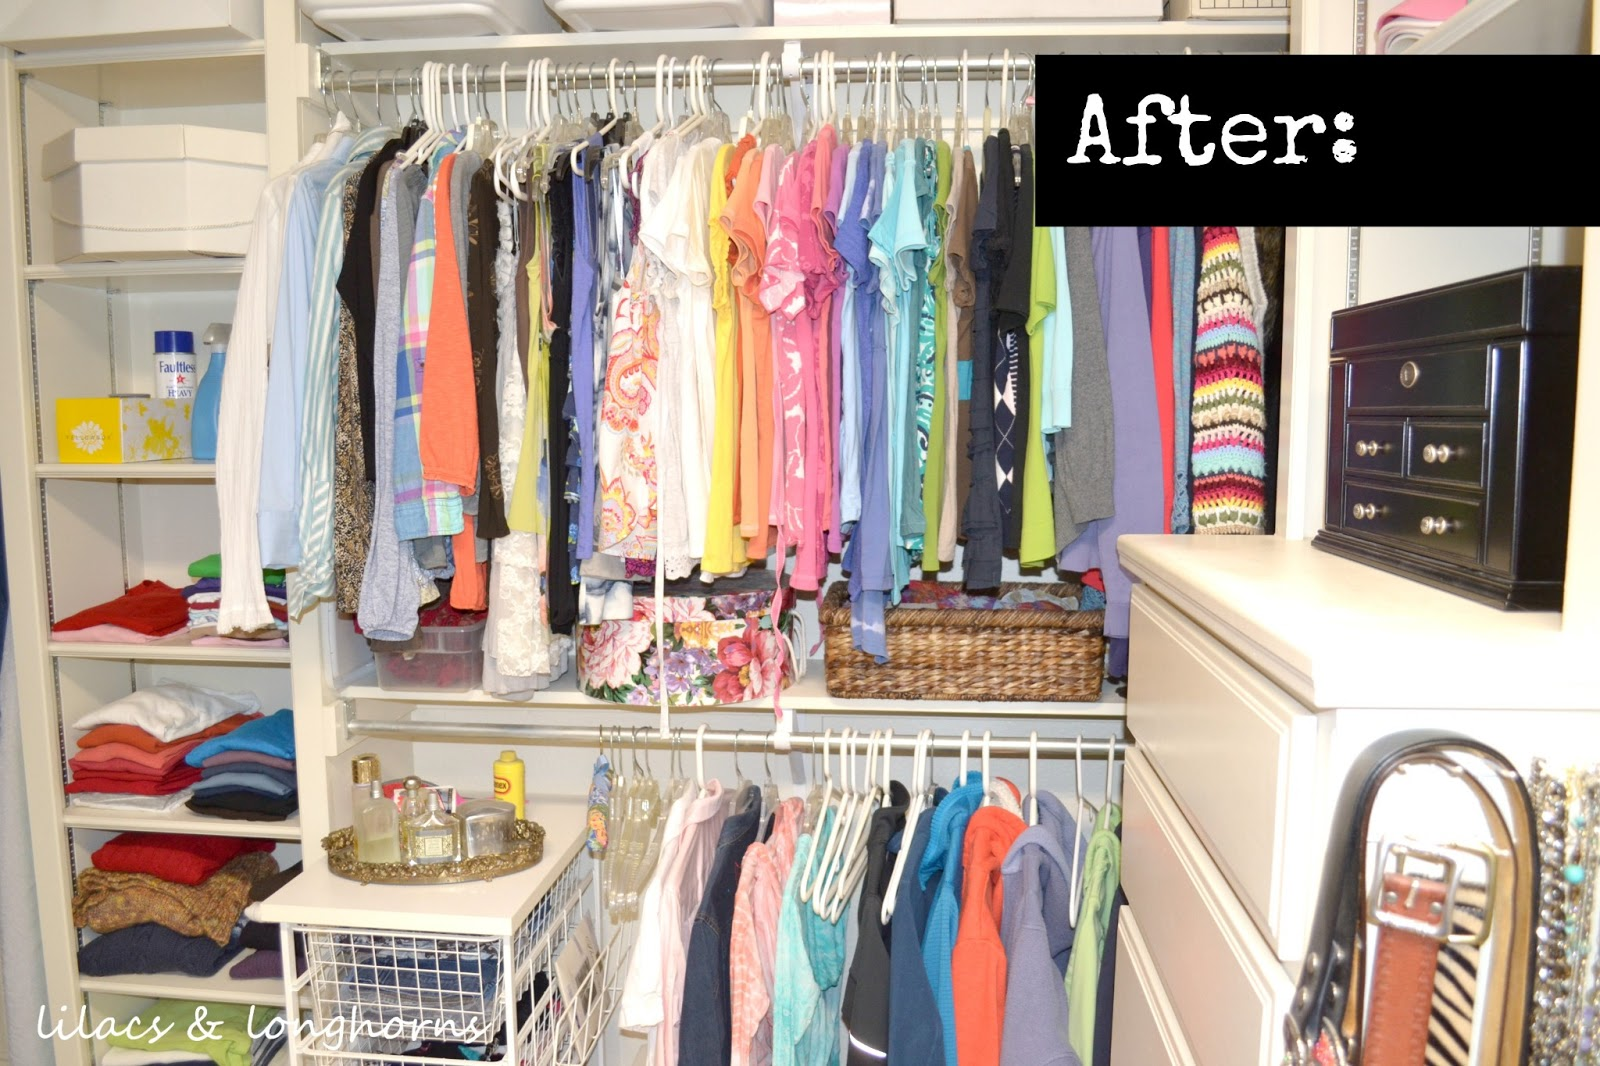 Tips for getting organized live creatively inspired for Ideas to organize closets